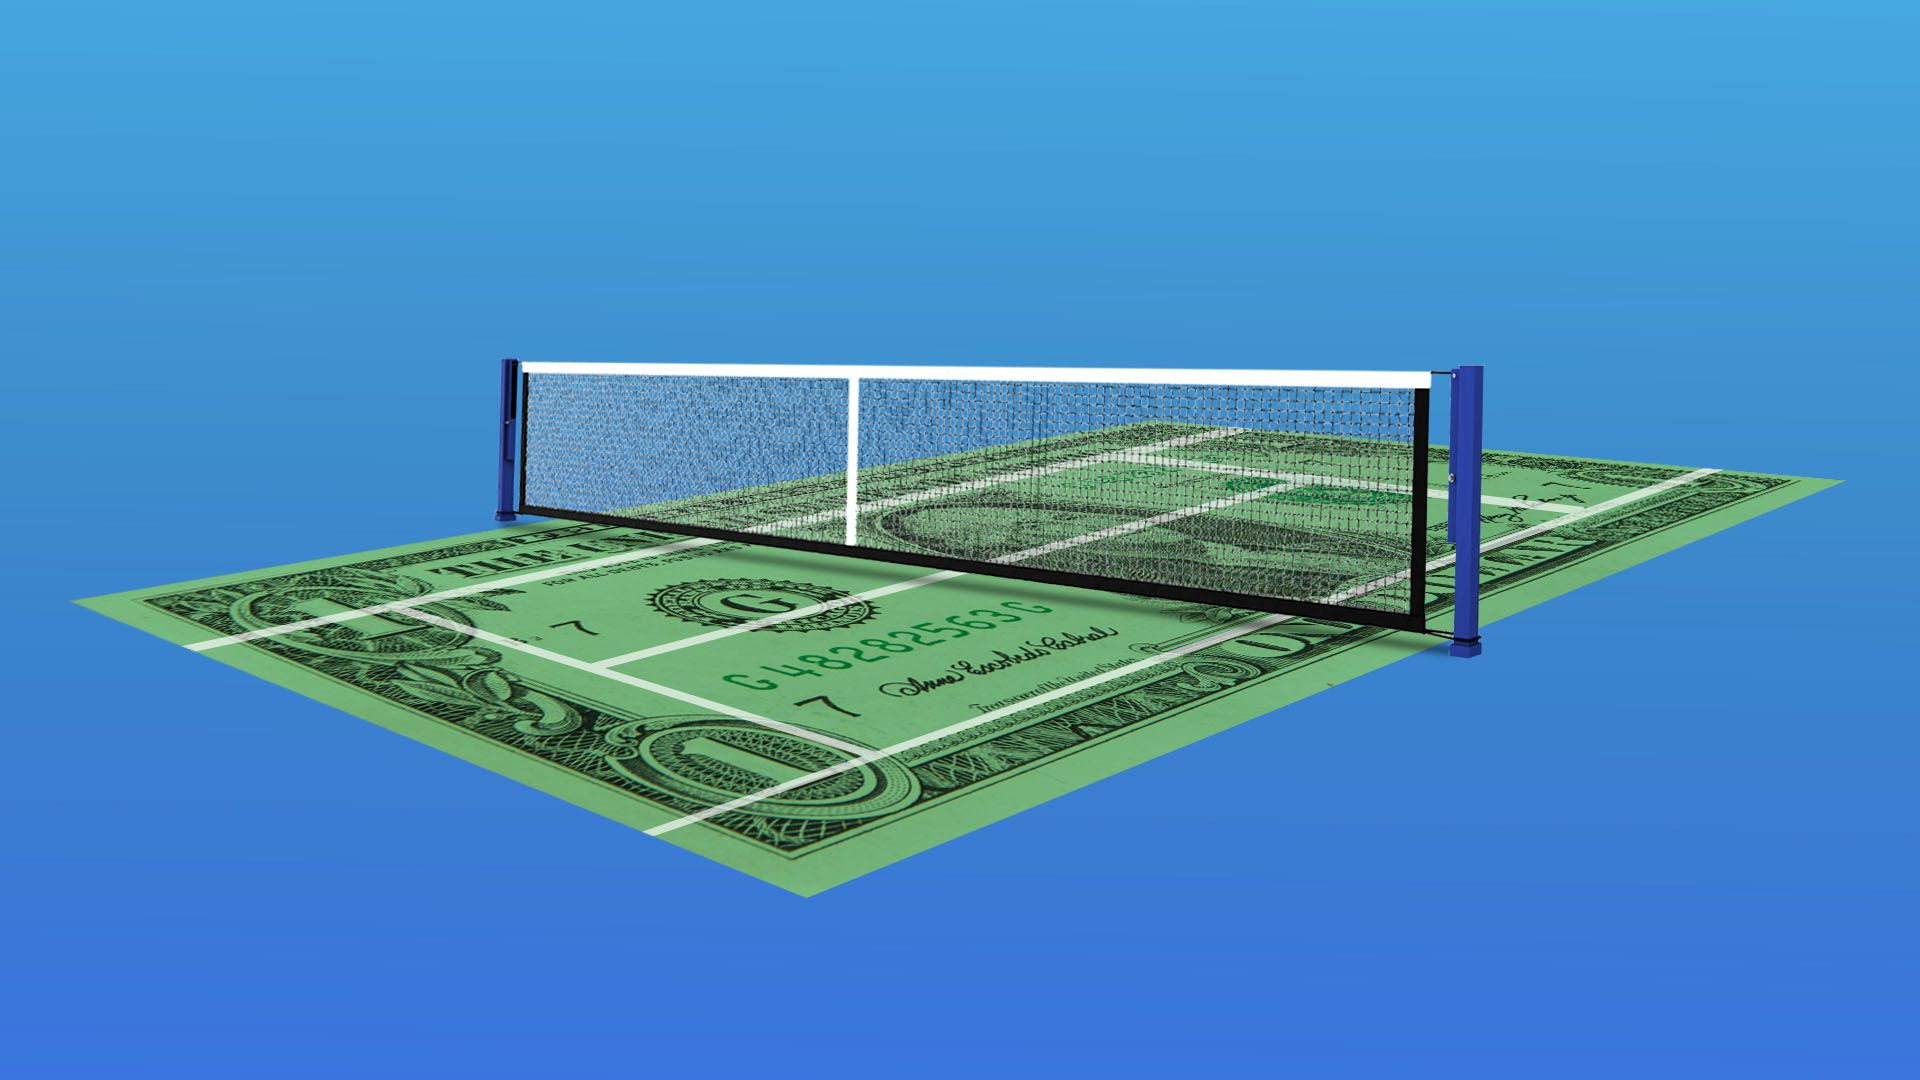 Illustration of tennis court made of money